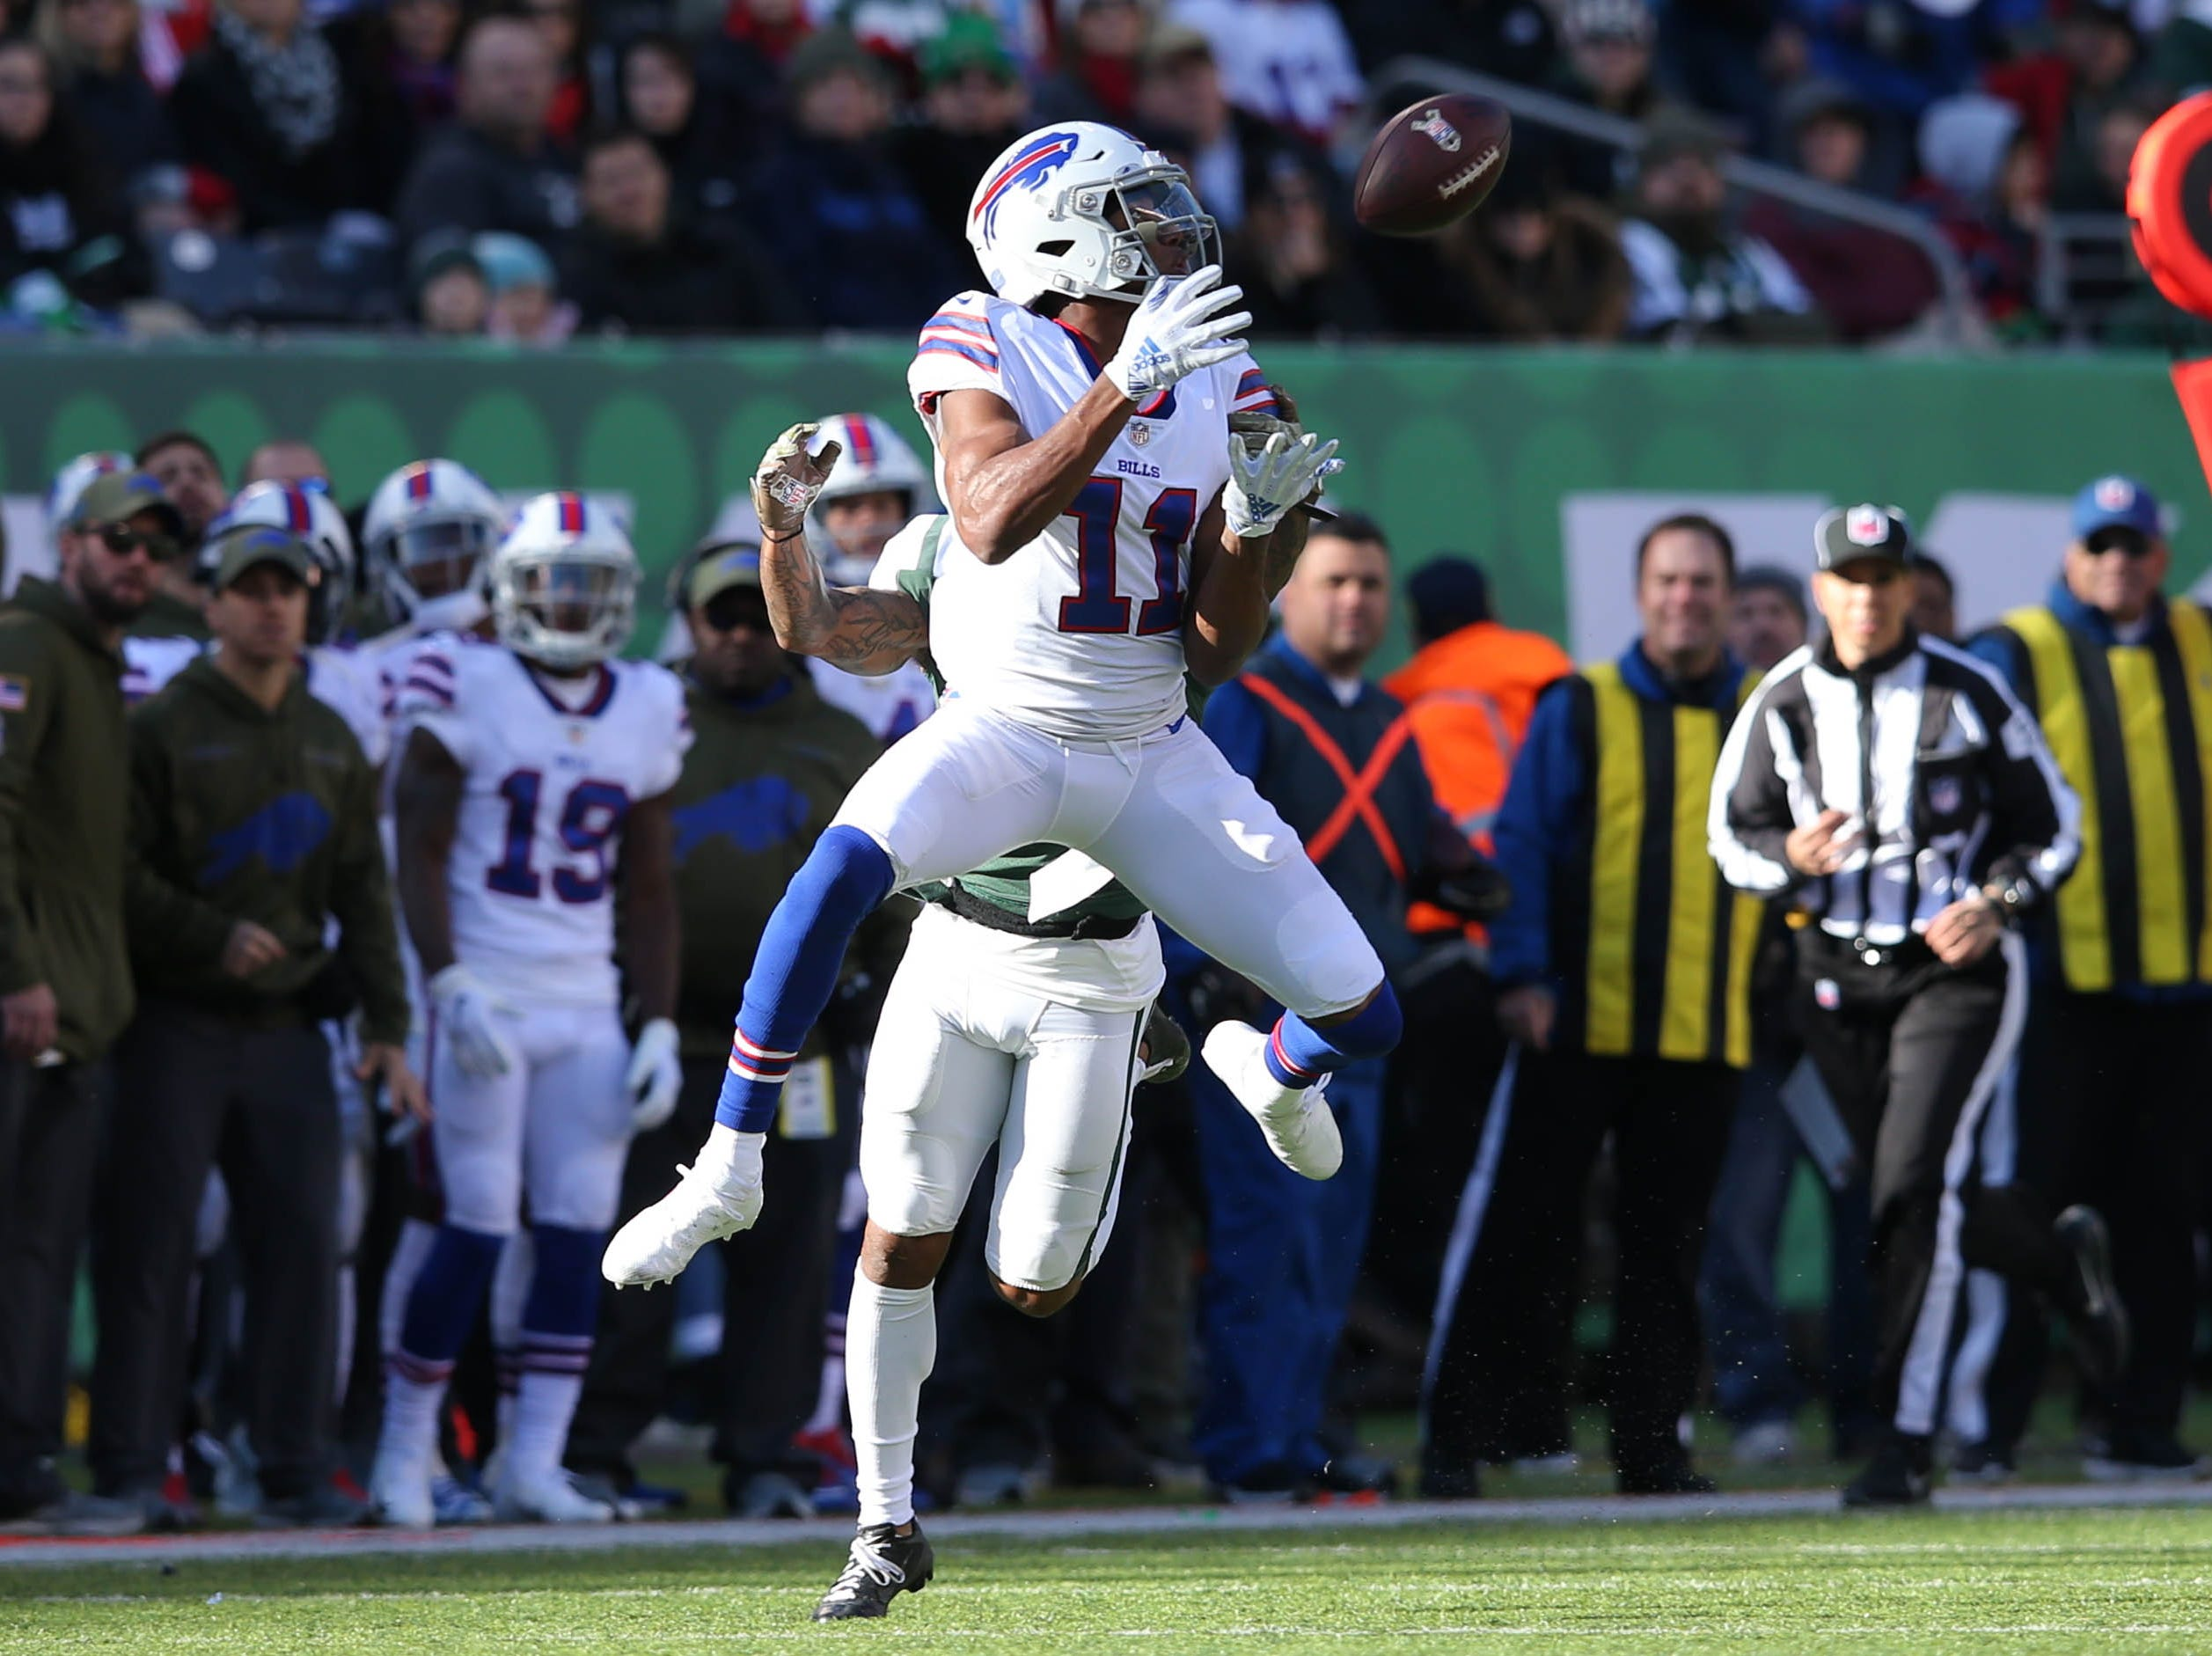 Nov 11, 2018; East Rutherford, NJ, USA; Buffalo Bills wide receiver Zay Jones (11) catches a pass against New York Jets cornerback Buster Skrine (41) during the first quarter at MetLife Stadium. Mandatory Credit: Brad Penner-USA TODAY Sports